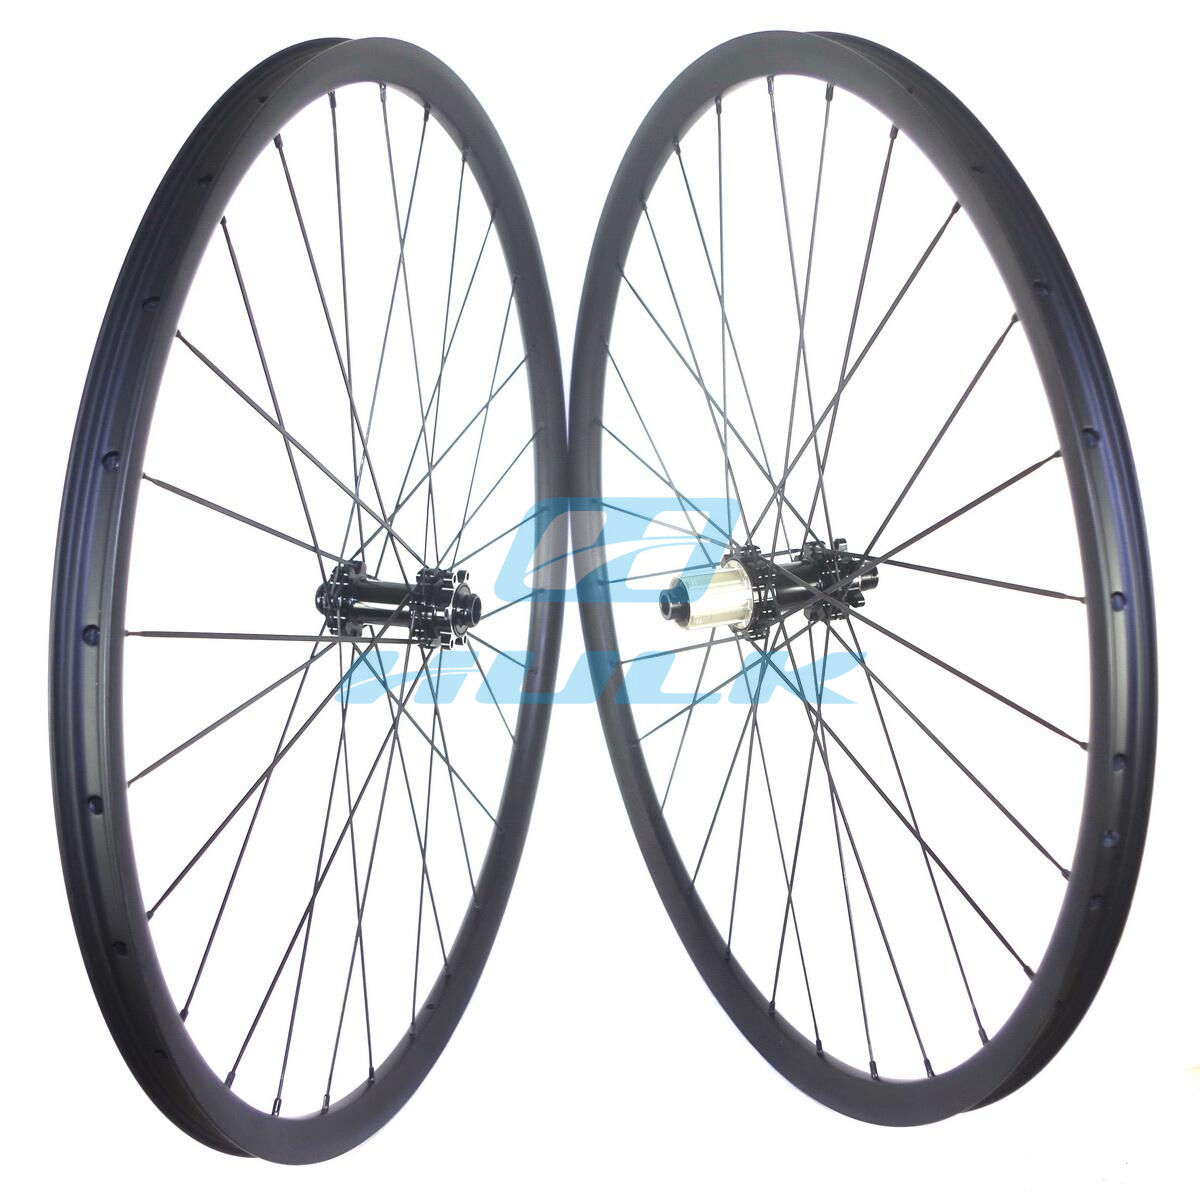 29er 27mm  width Carbon wheelset for mountain bike powerway straight pull MTB hub  cheap sale outlet online